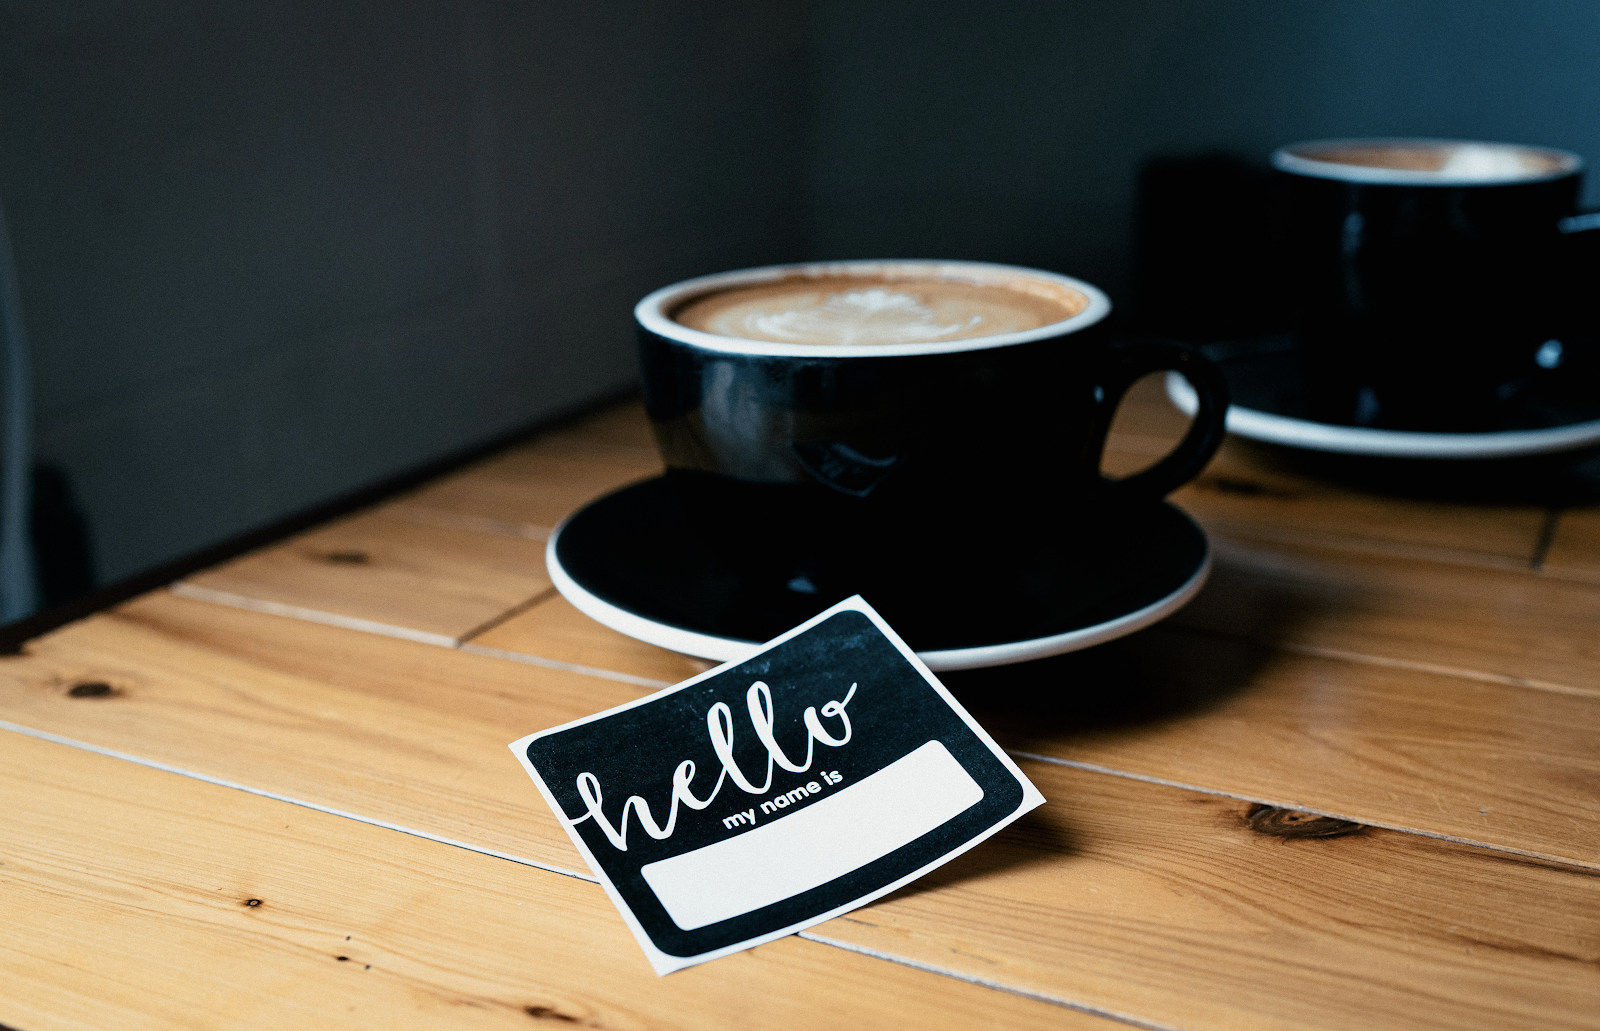 A coffee cup on a table with a 'hello my name is' sticker set next to it